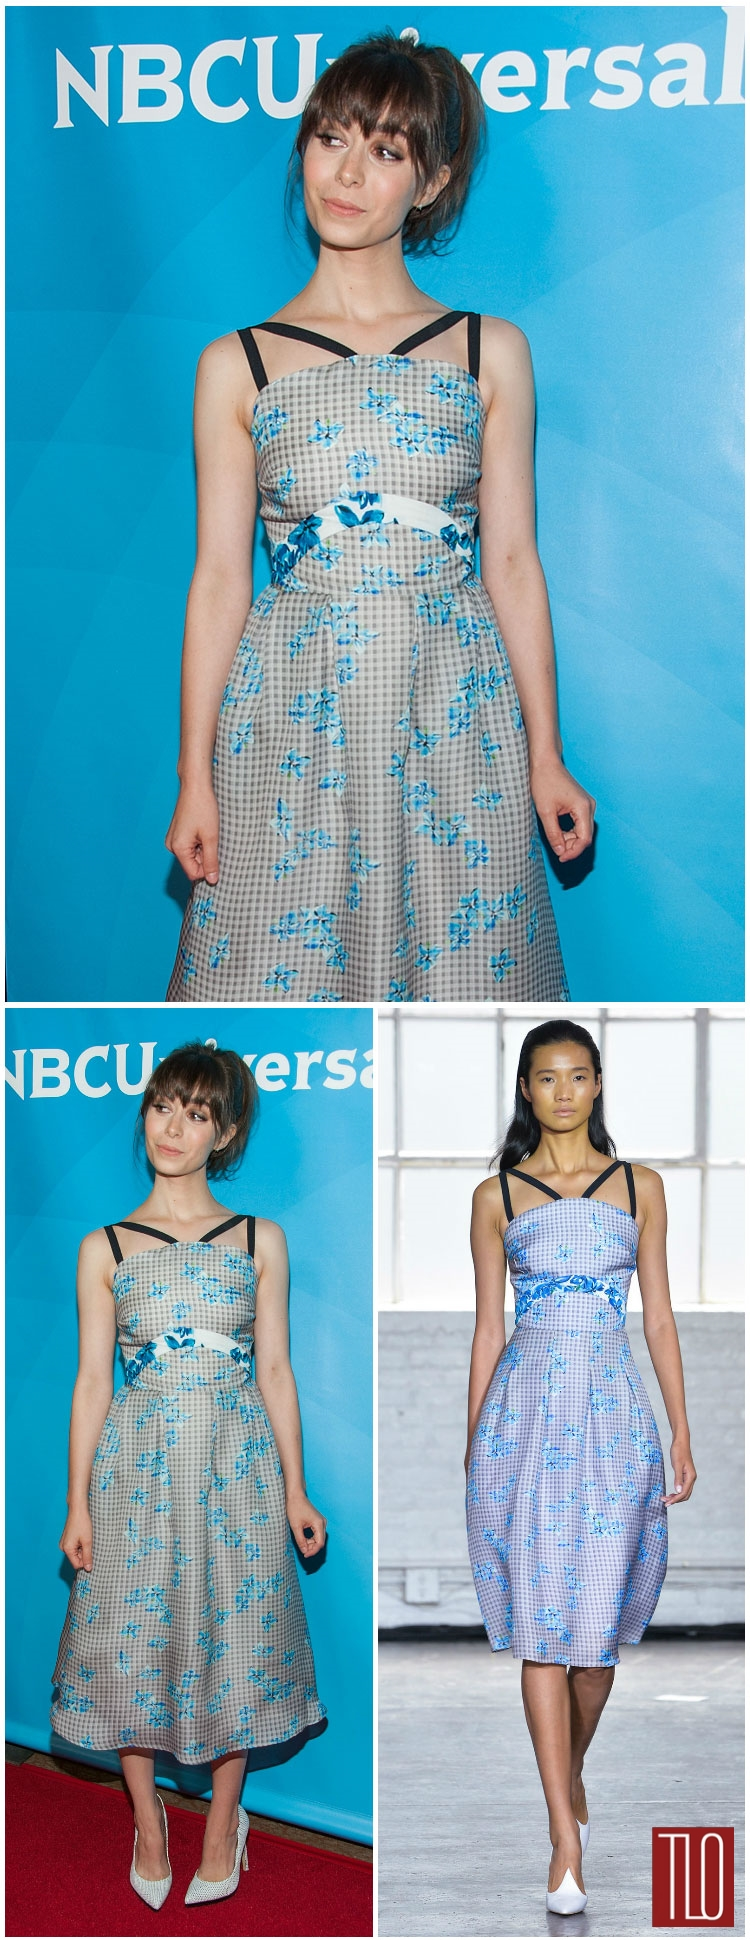 Cristin-Milioti-Tanya-Taylor-NBC-Universal-Summer-TCA-Tour-Red-Carpet-Tom-Lorenzo-Site-TLO (1)